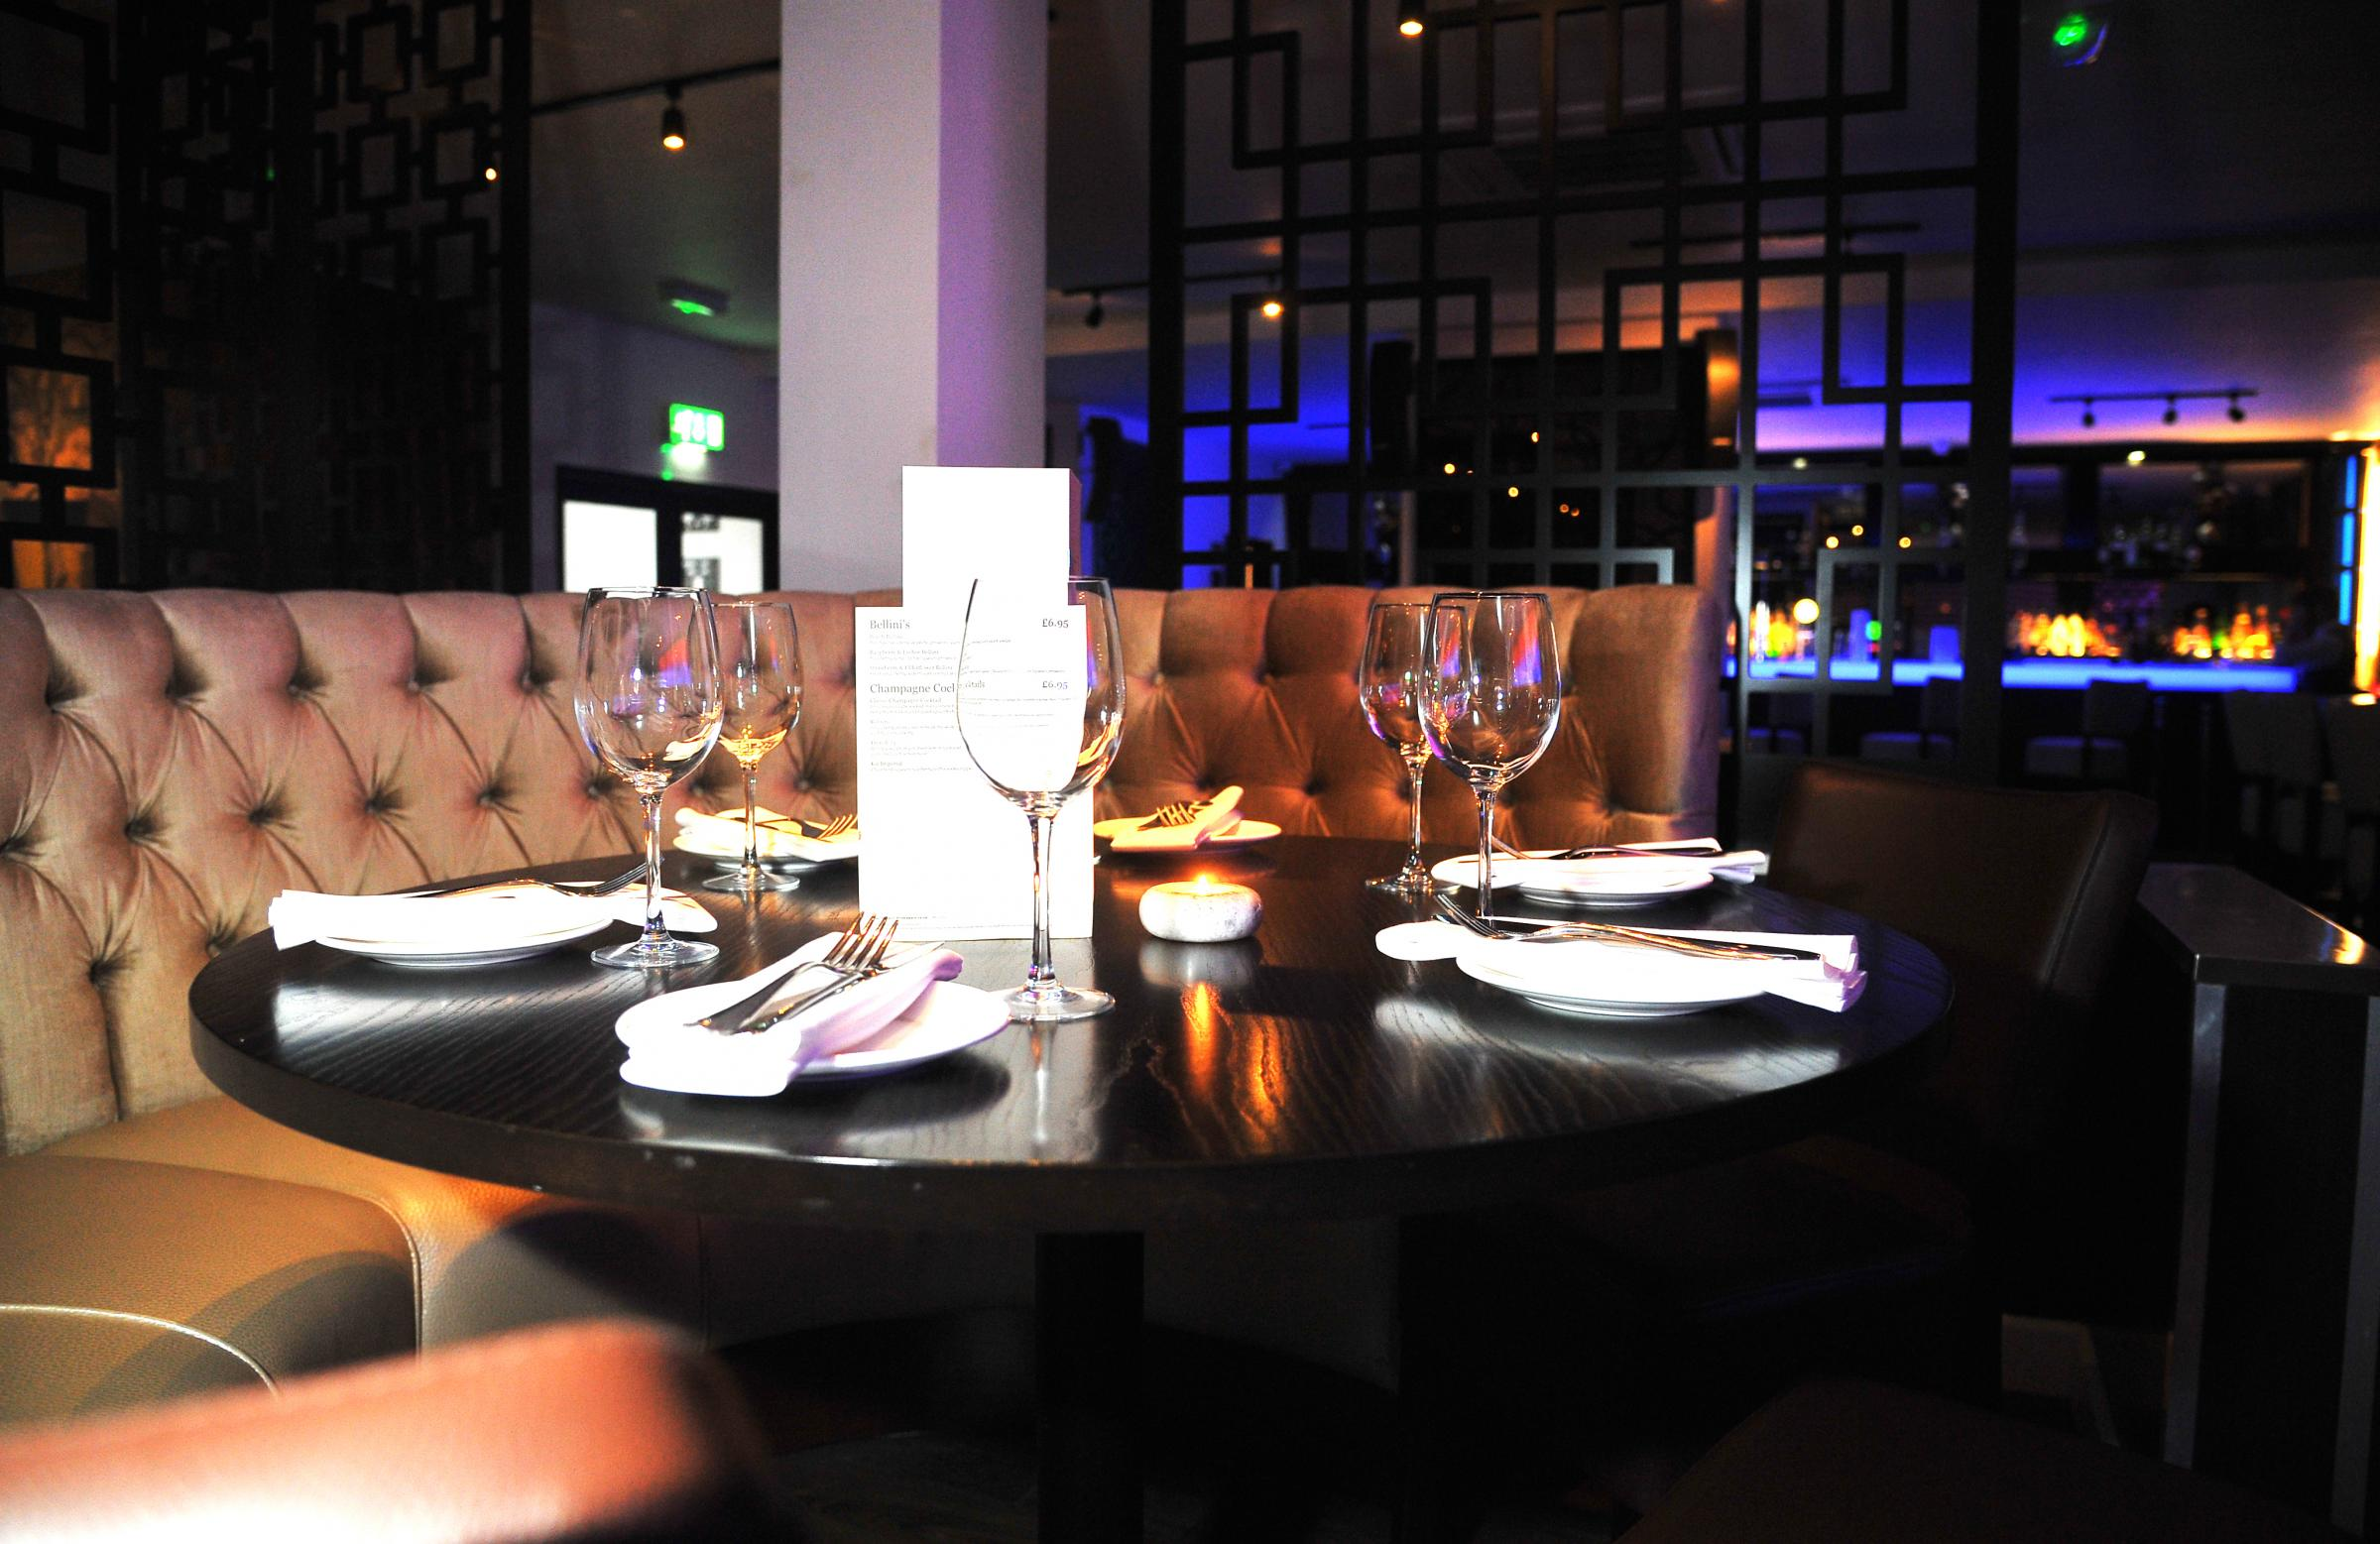 READER RECOMMENDS : Where the best place in town for a Valentine Day dinner date ?